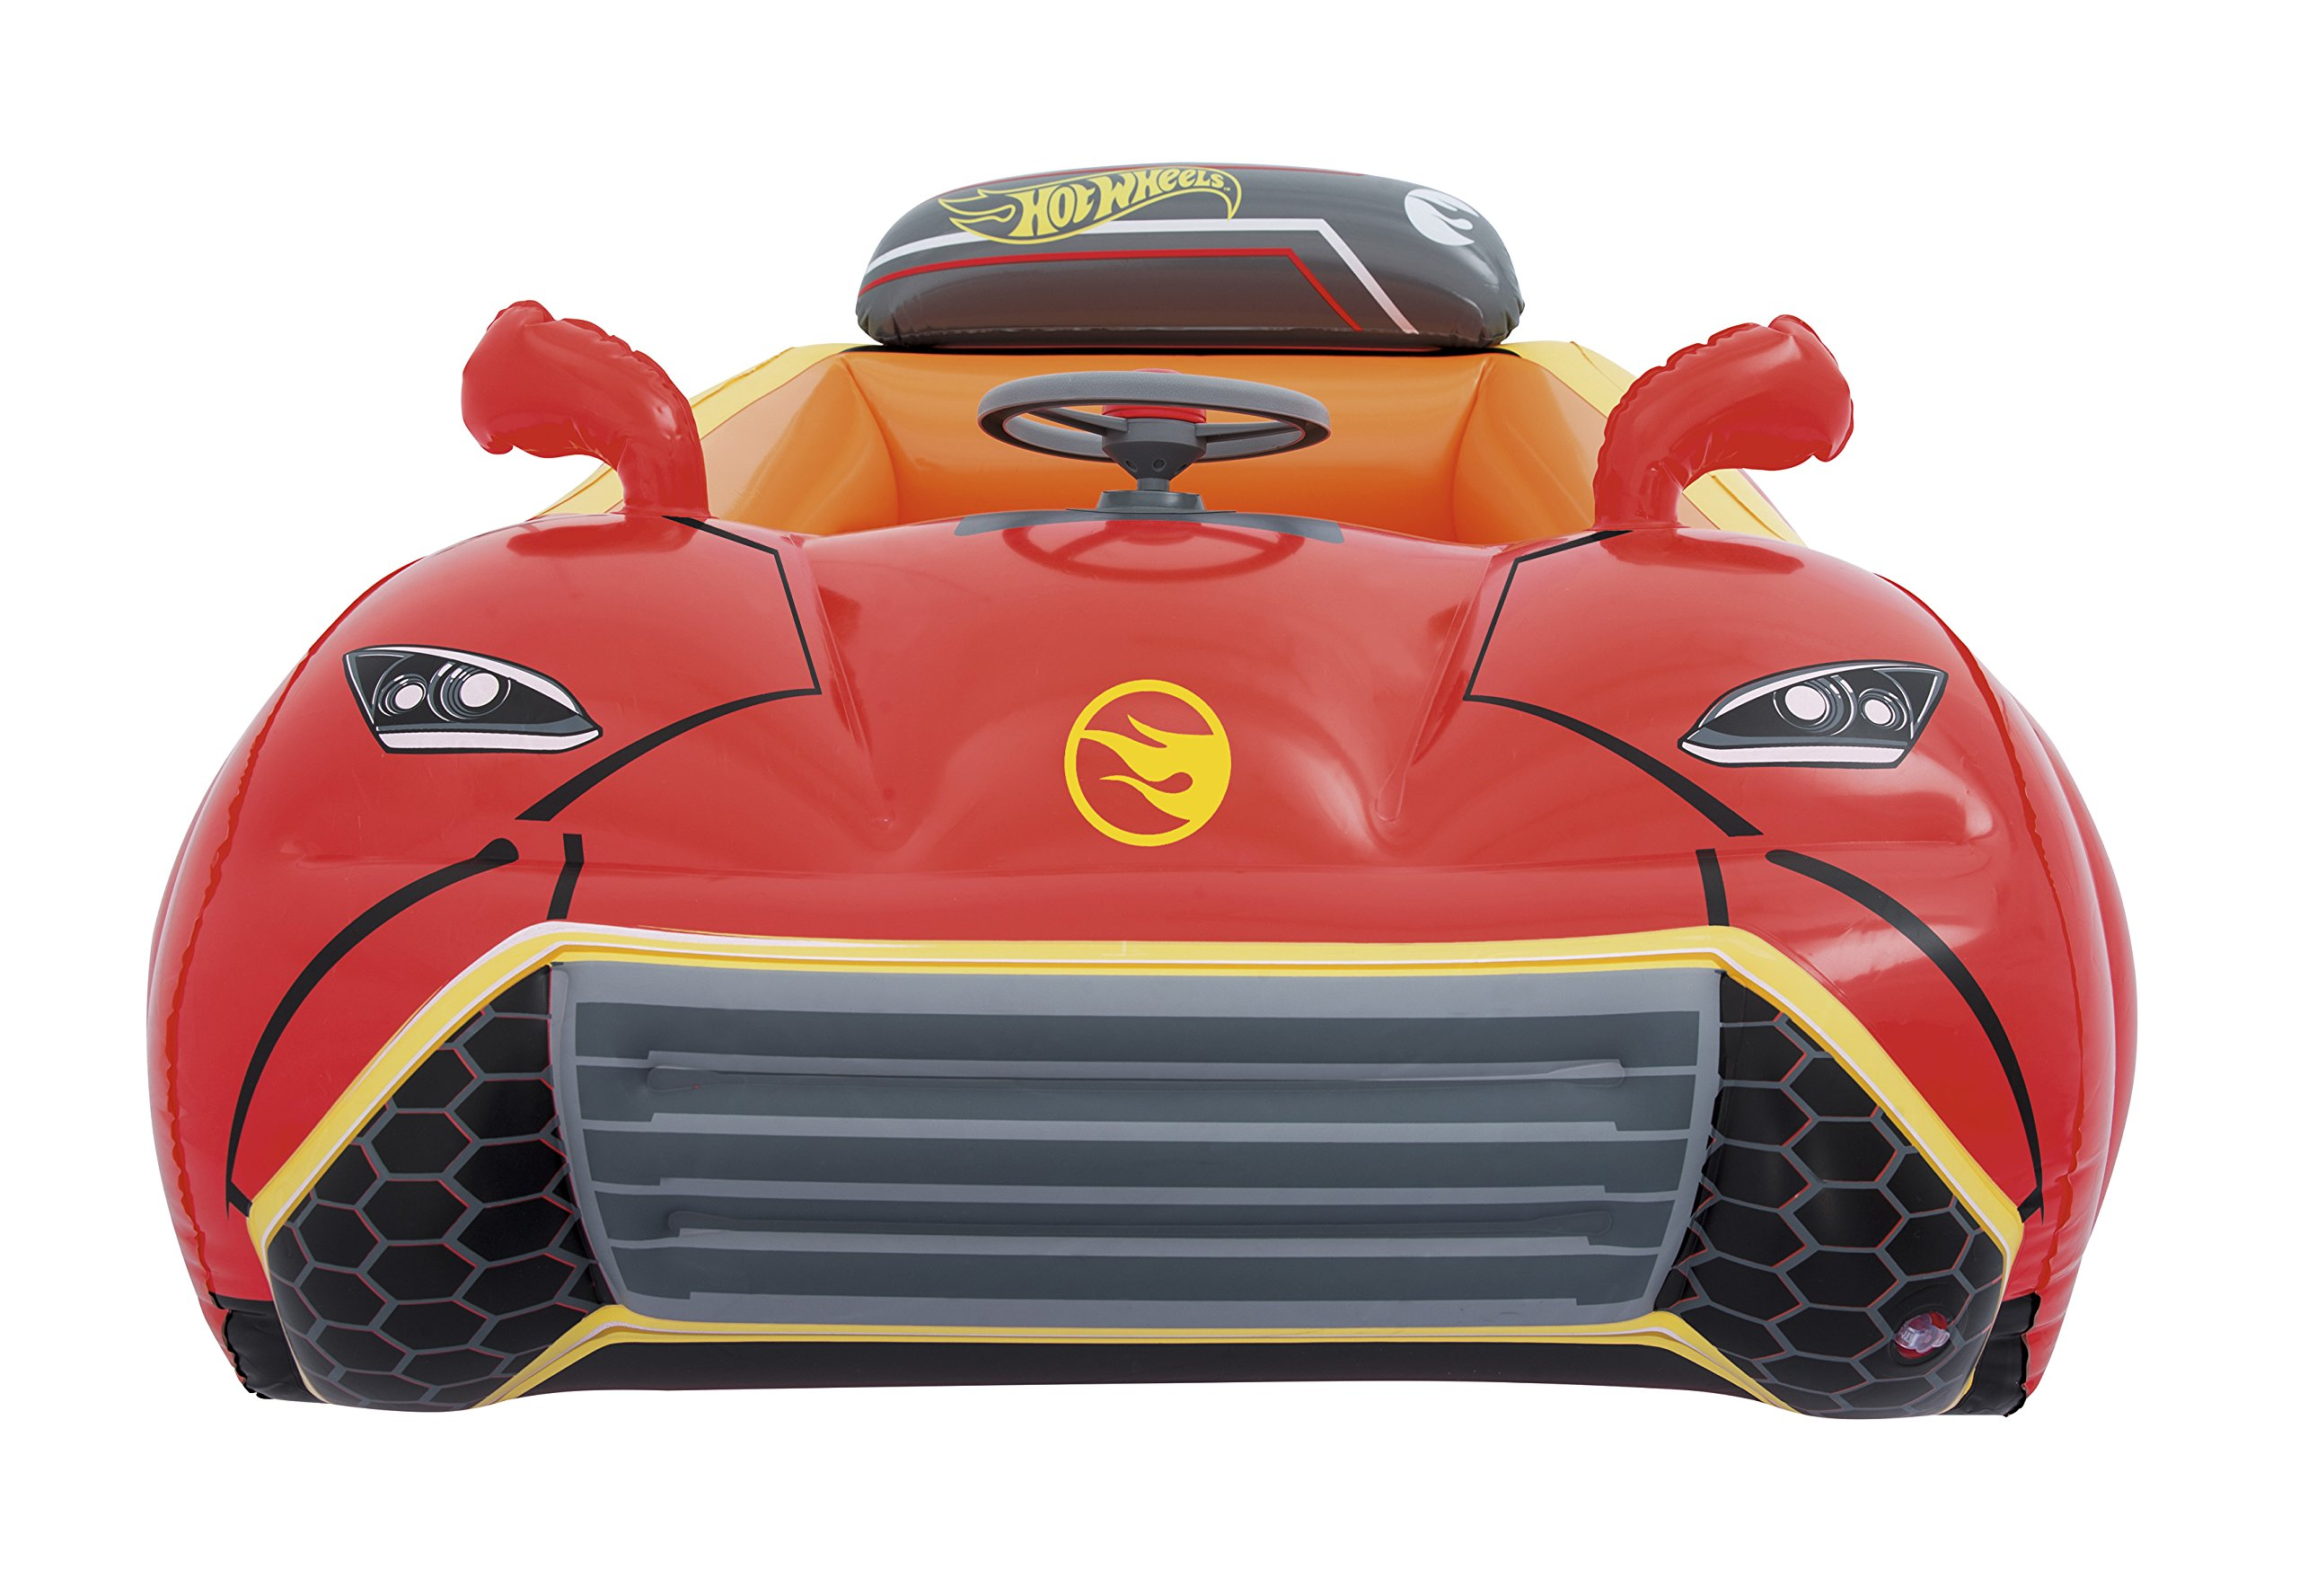 Bestway Hot Wheels Children's Inflatable Car Ball Pit, Includes 25 Balls by Bestway (Image #5)